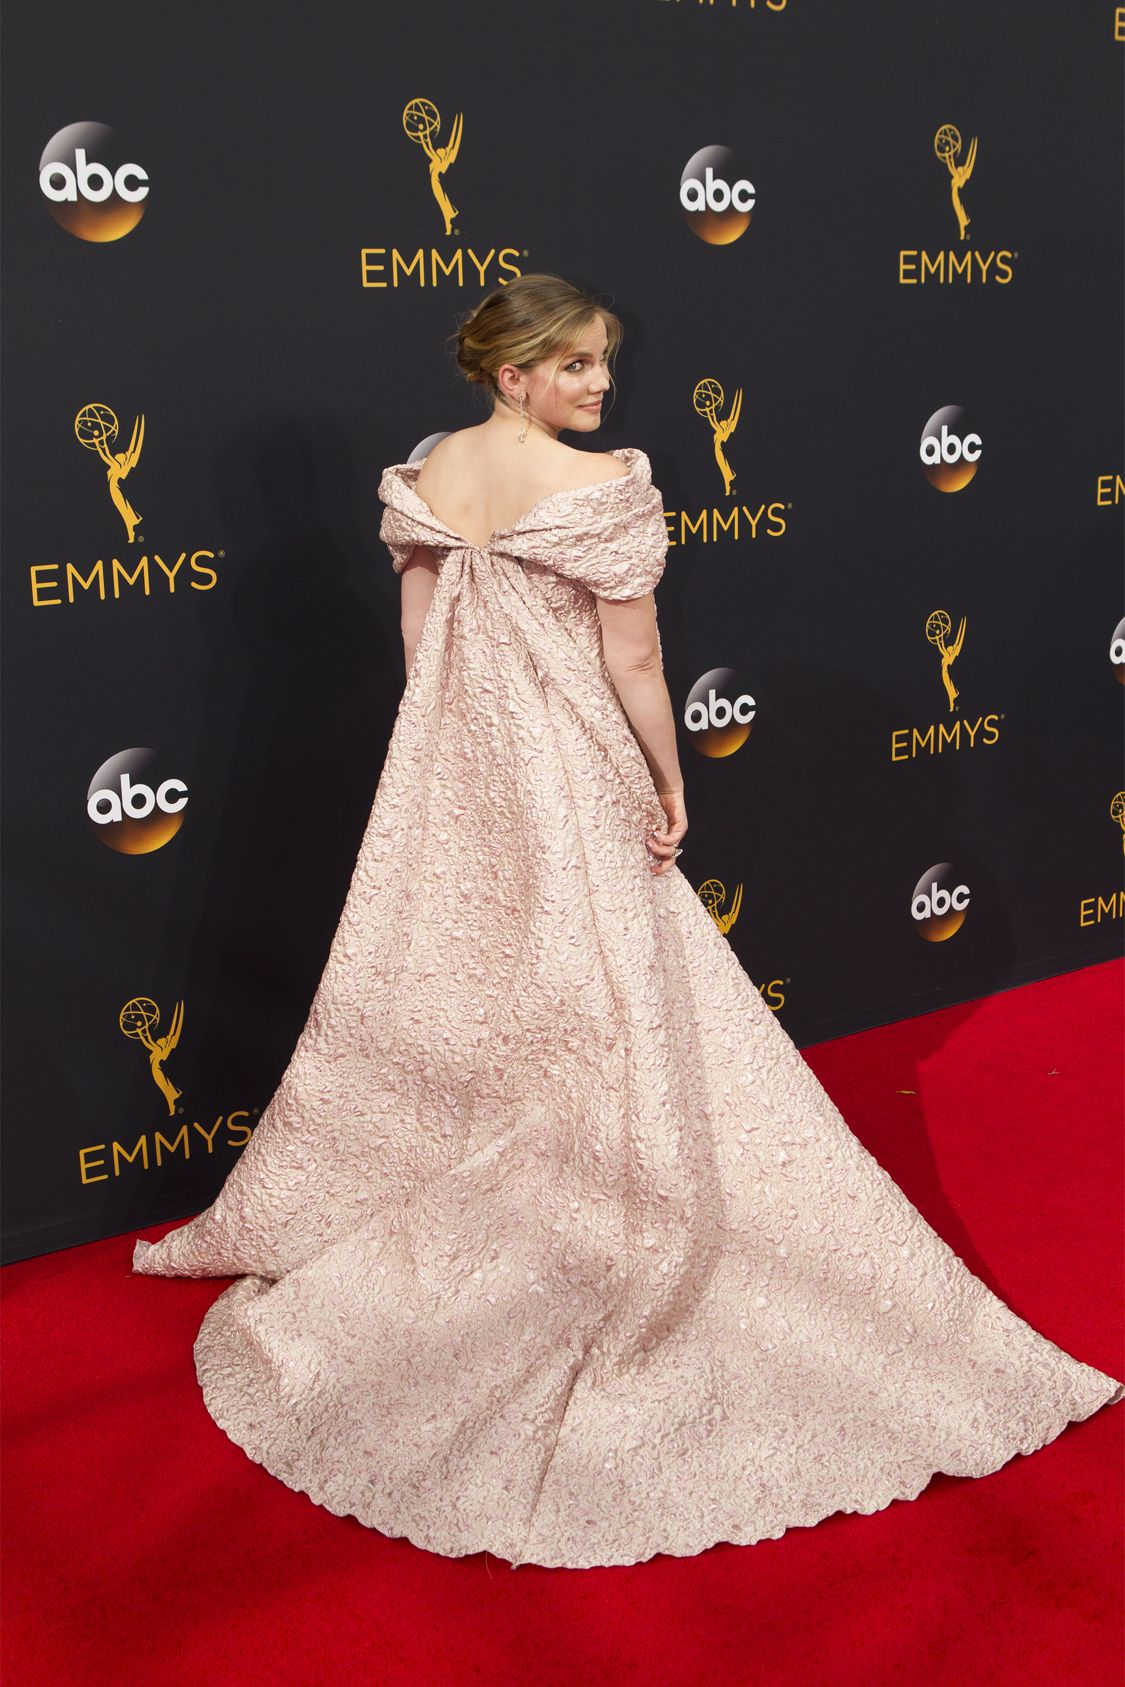 """THE 68TH EMMY(r) AWARDS - """"The 68th Emmy Awards"""" broadcasts live from The Microsoft Theater in Los Angeles, Sunday, September 18 (7:00-11:00 p.m. EDT/4:00-8:00 p.m. PDT), on ABC and is hosted by Jimmy Kimmel. (ABC/Rick Rowell) ANNA CHLUMSKY"""